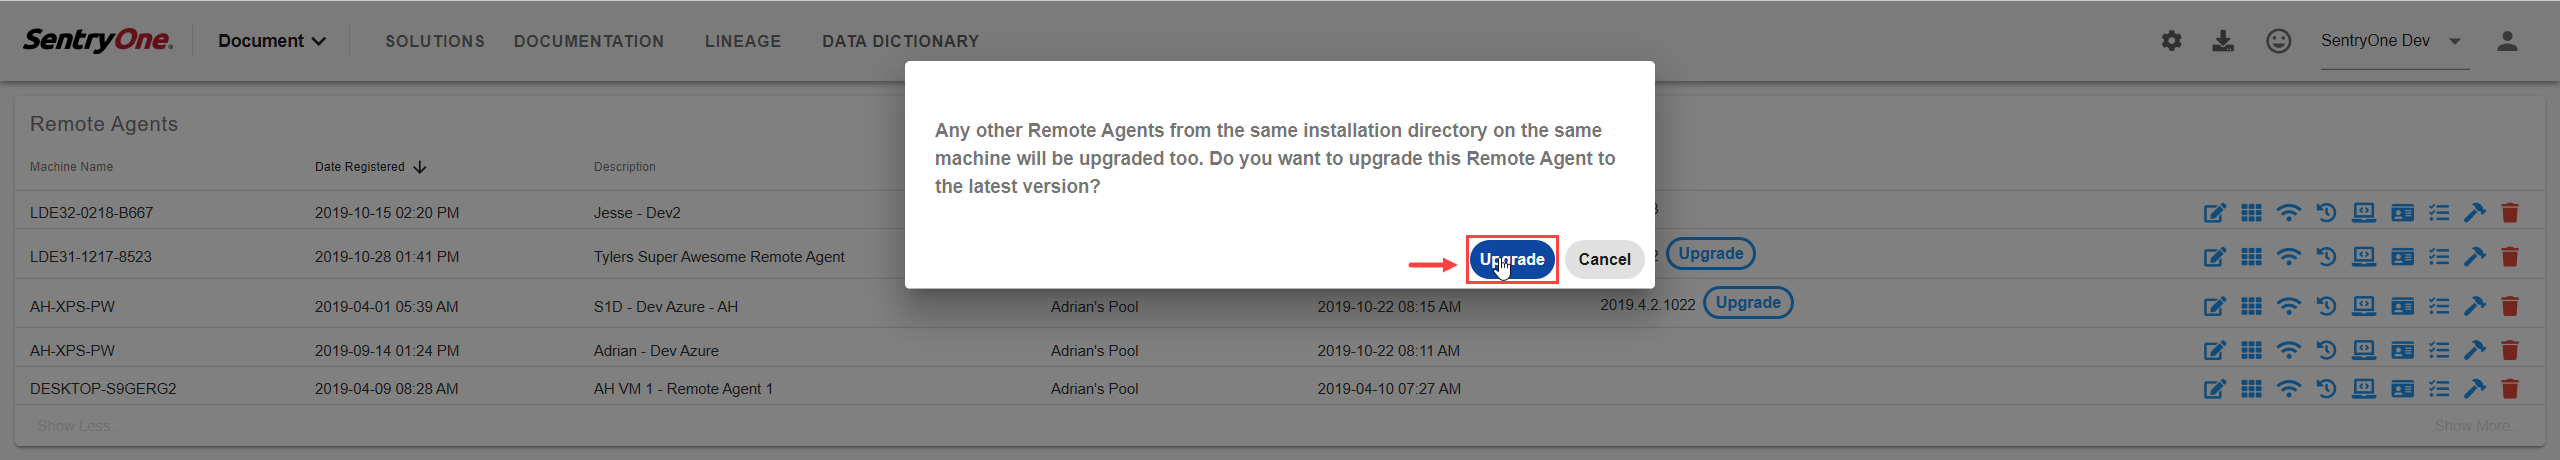 SentryOne Document Remote Agents Upgrade Remote Agent Prompt